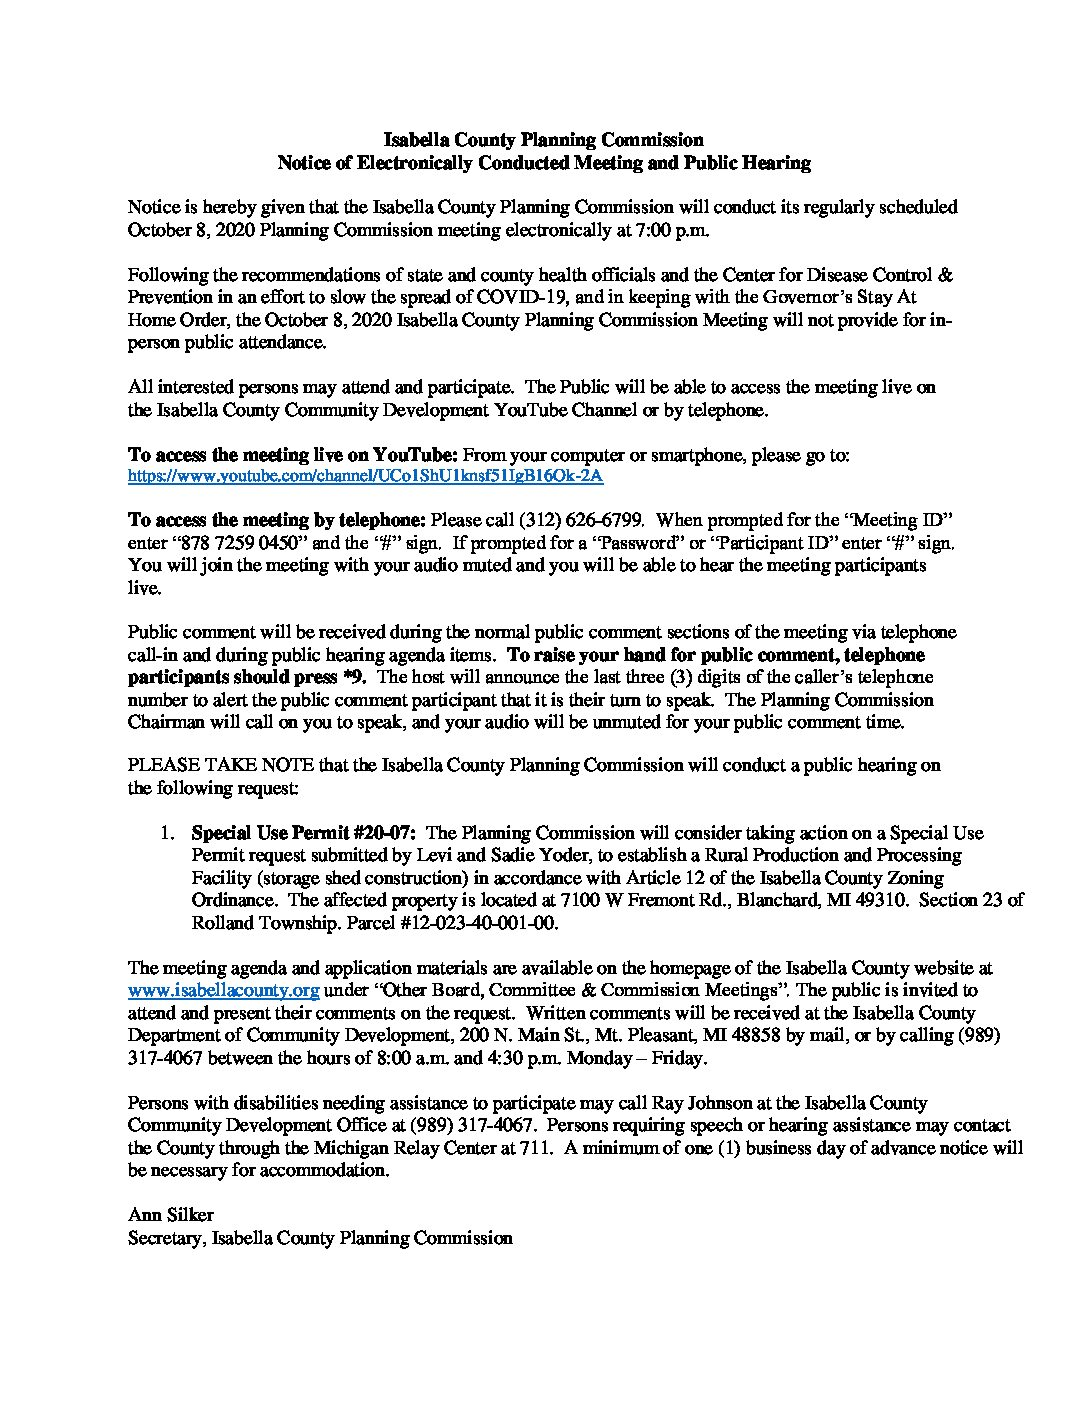 preview image of first page October 8, 2020 Meeting Notice and Public Hearing Notice